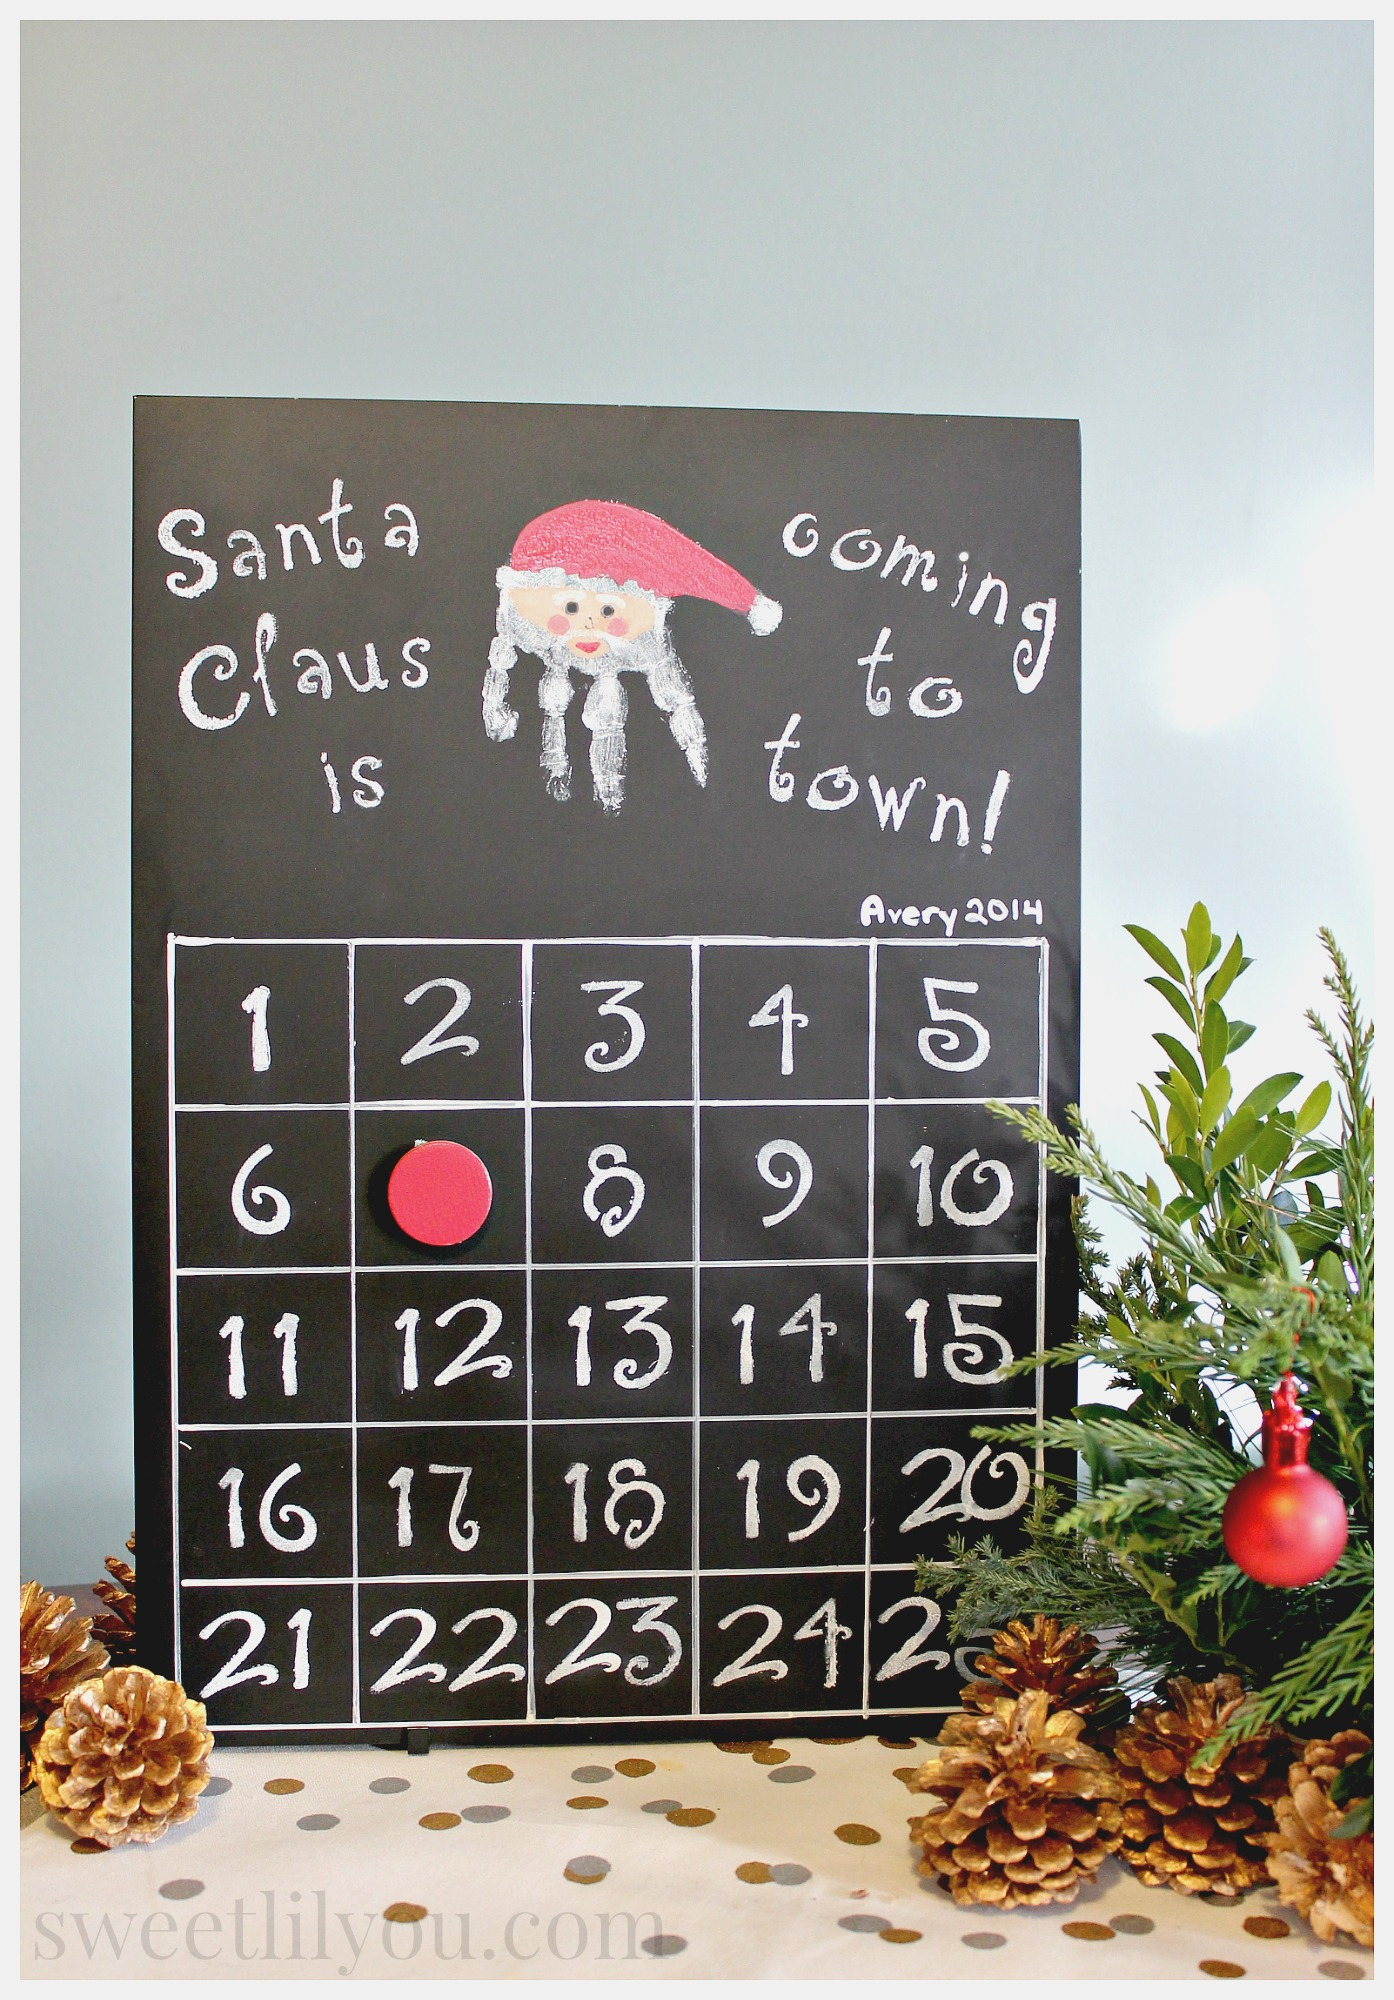 Diy Calendar Countdown : Christmas countdown calendar diy sweet lil you